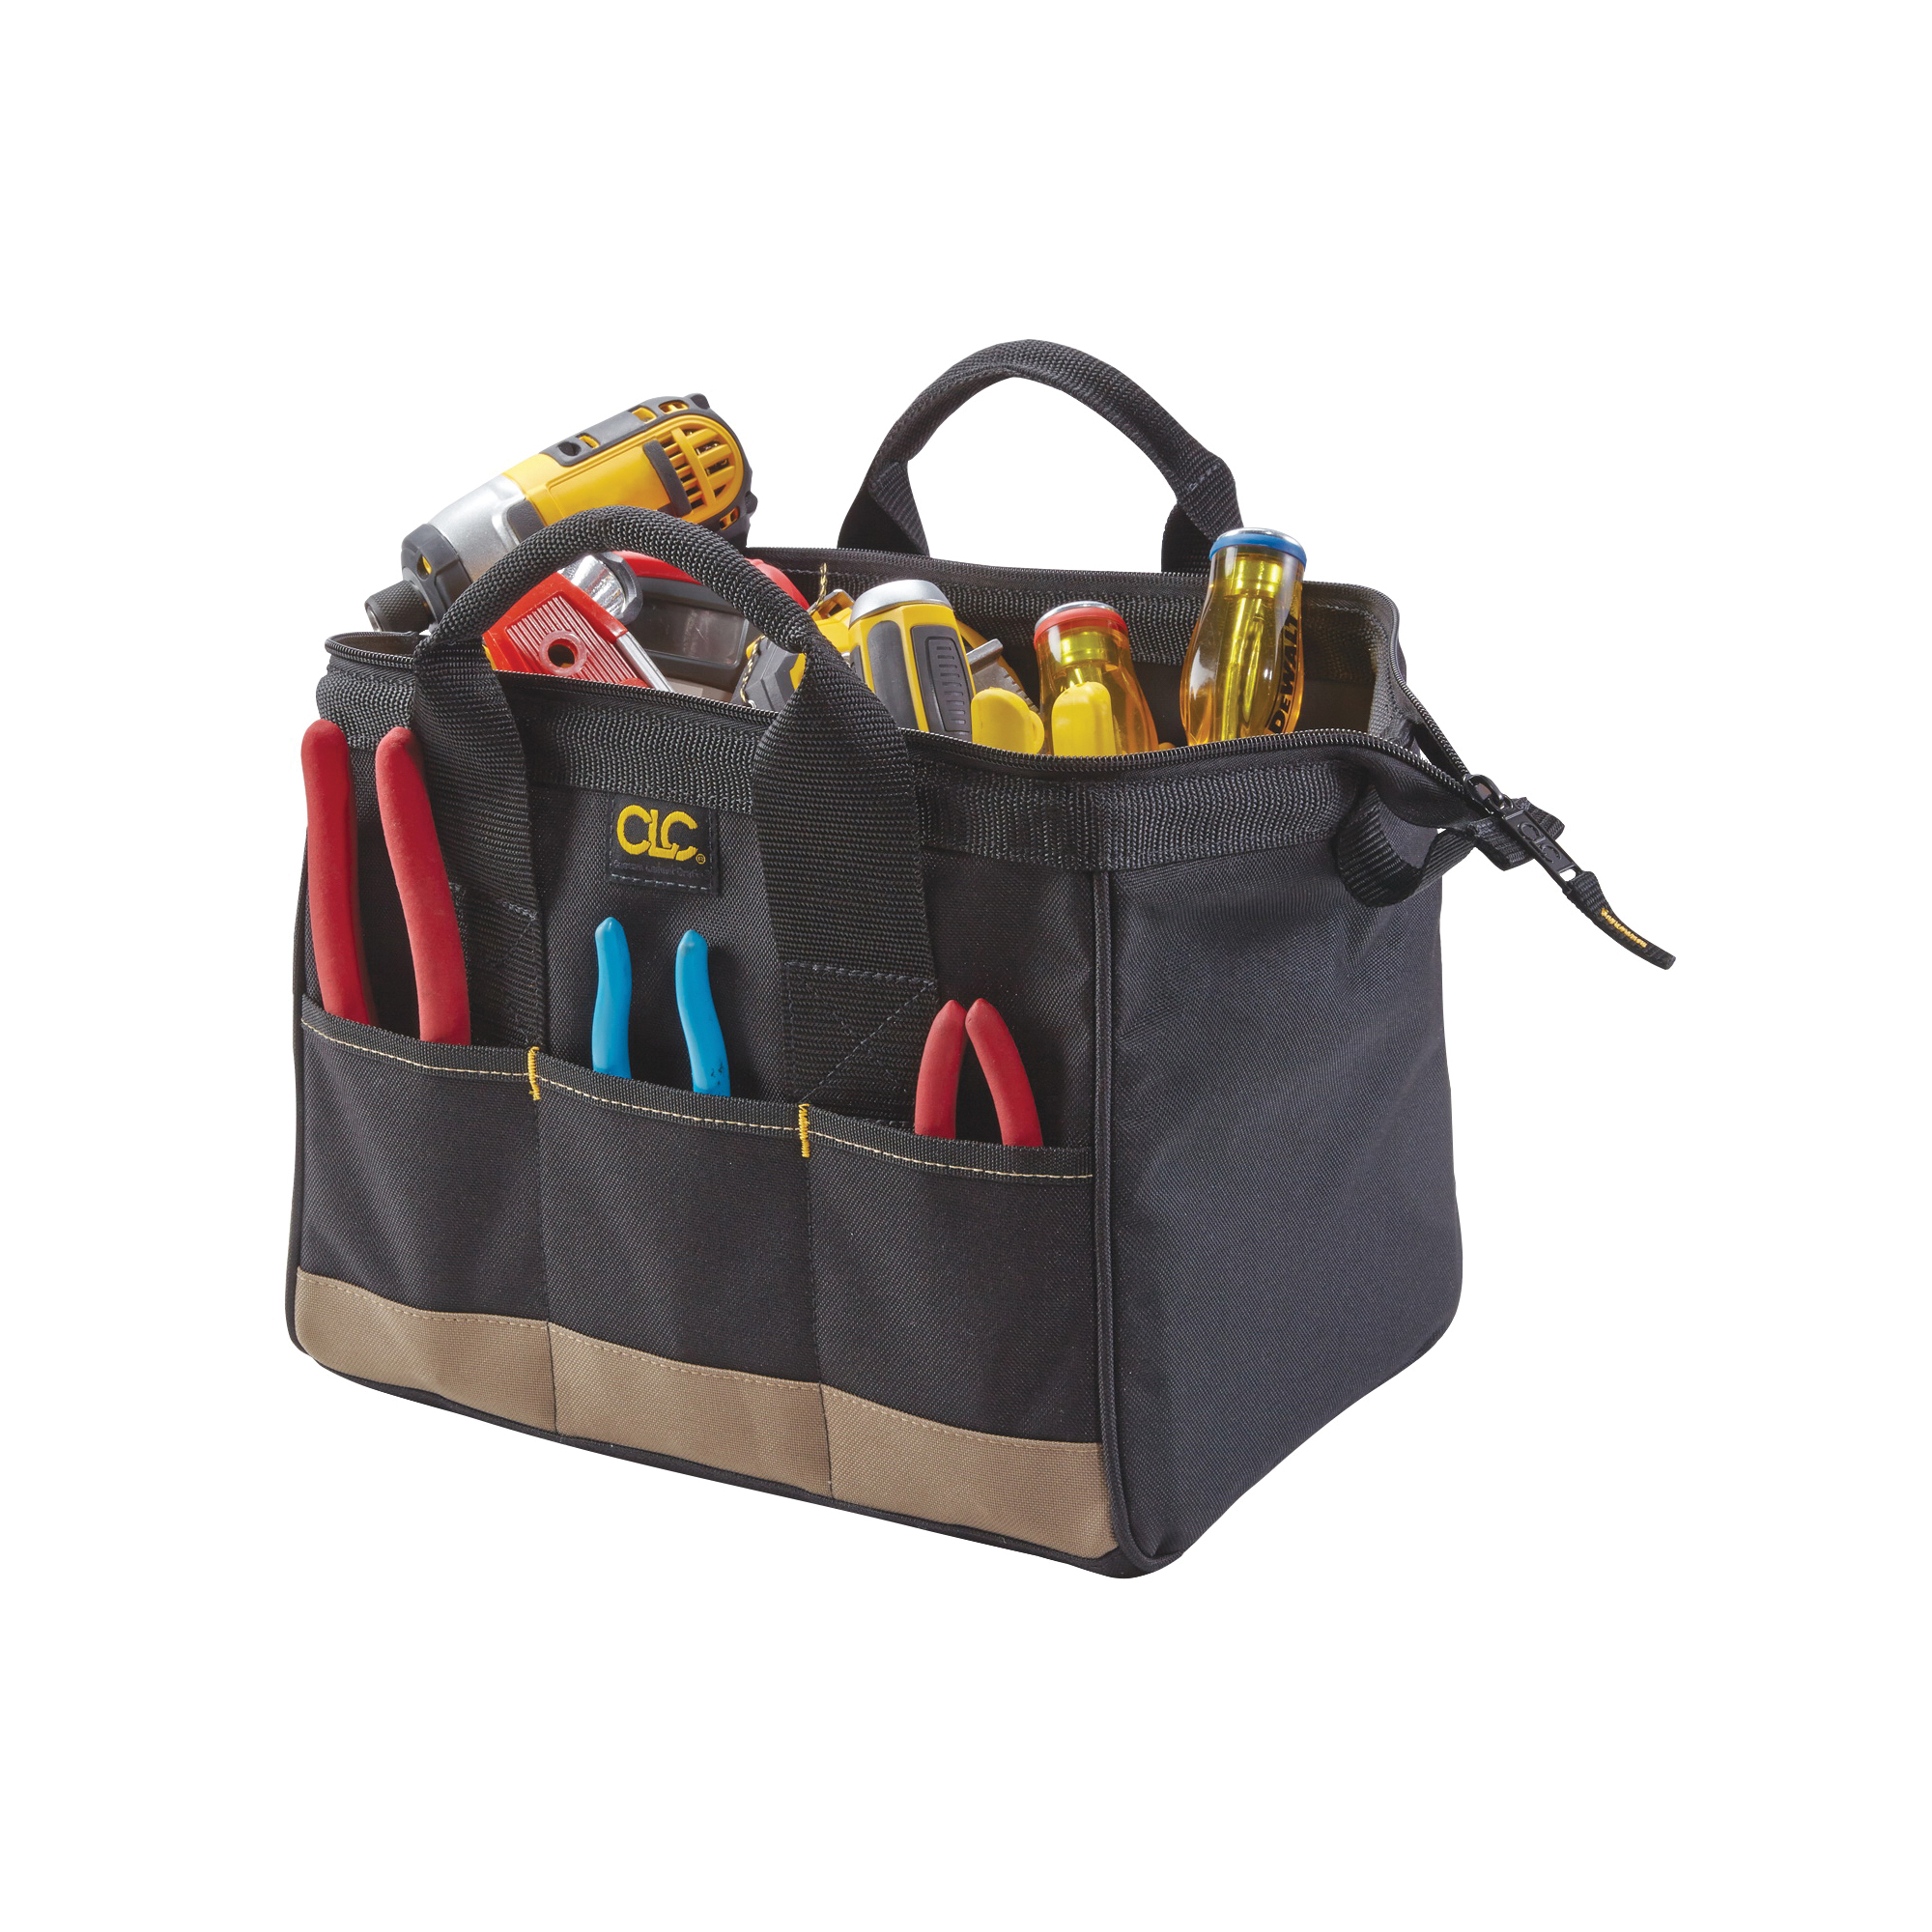 Picture of CLC Tool Works BIGMOUTH 1161 Tote Bag, 8-1/2 in W, 12 in D, 8 in H, 14 -Pocket, Polyester, Black/Blue